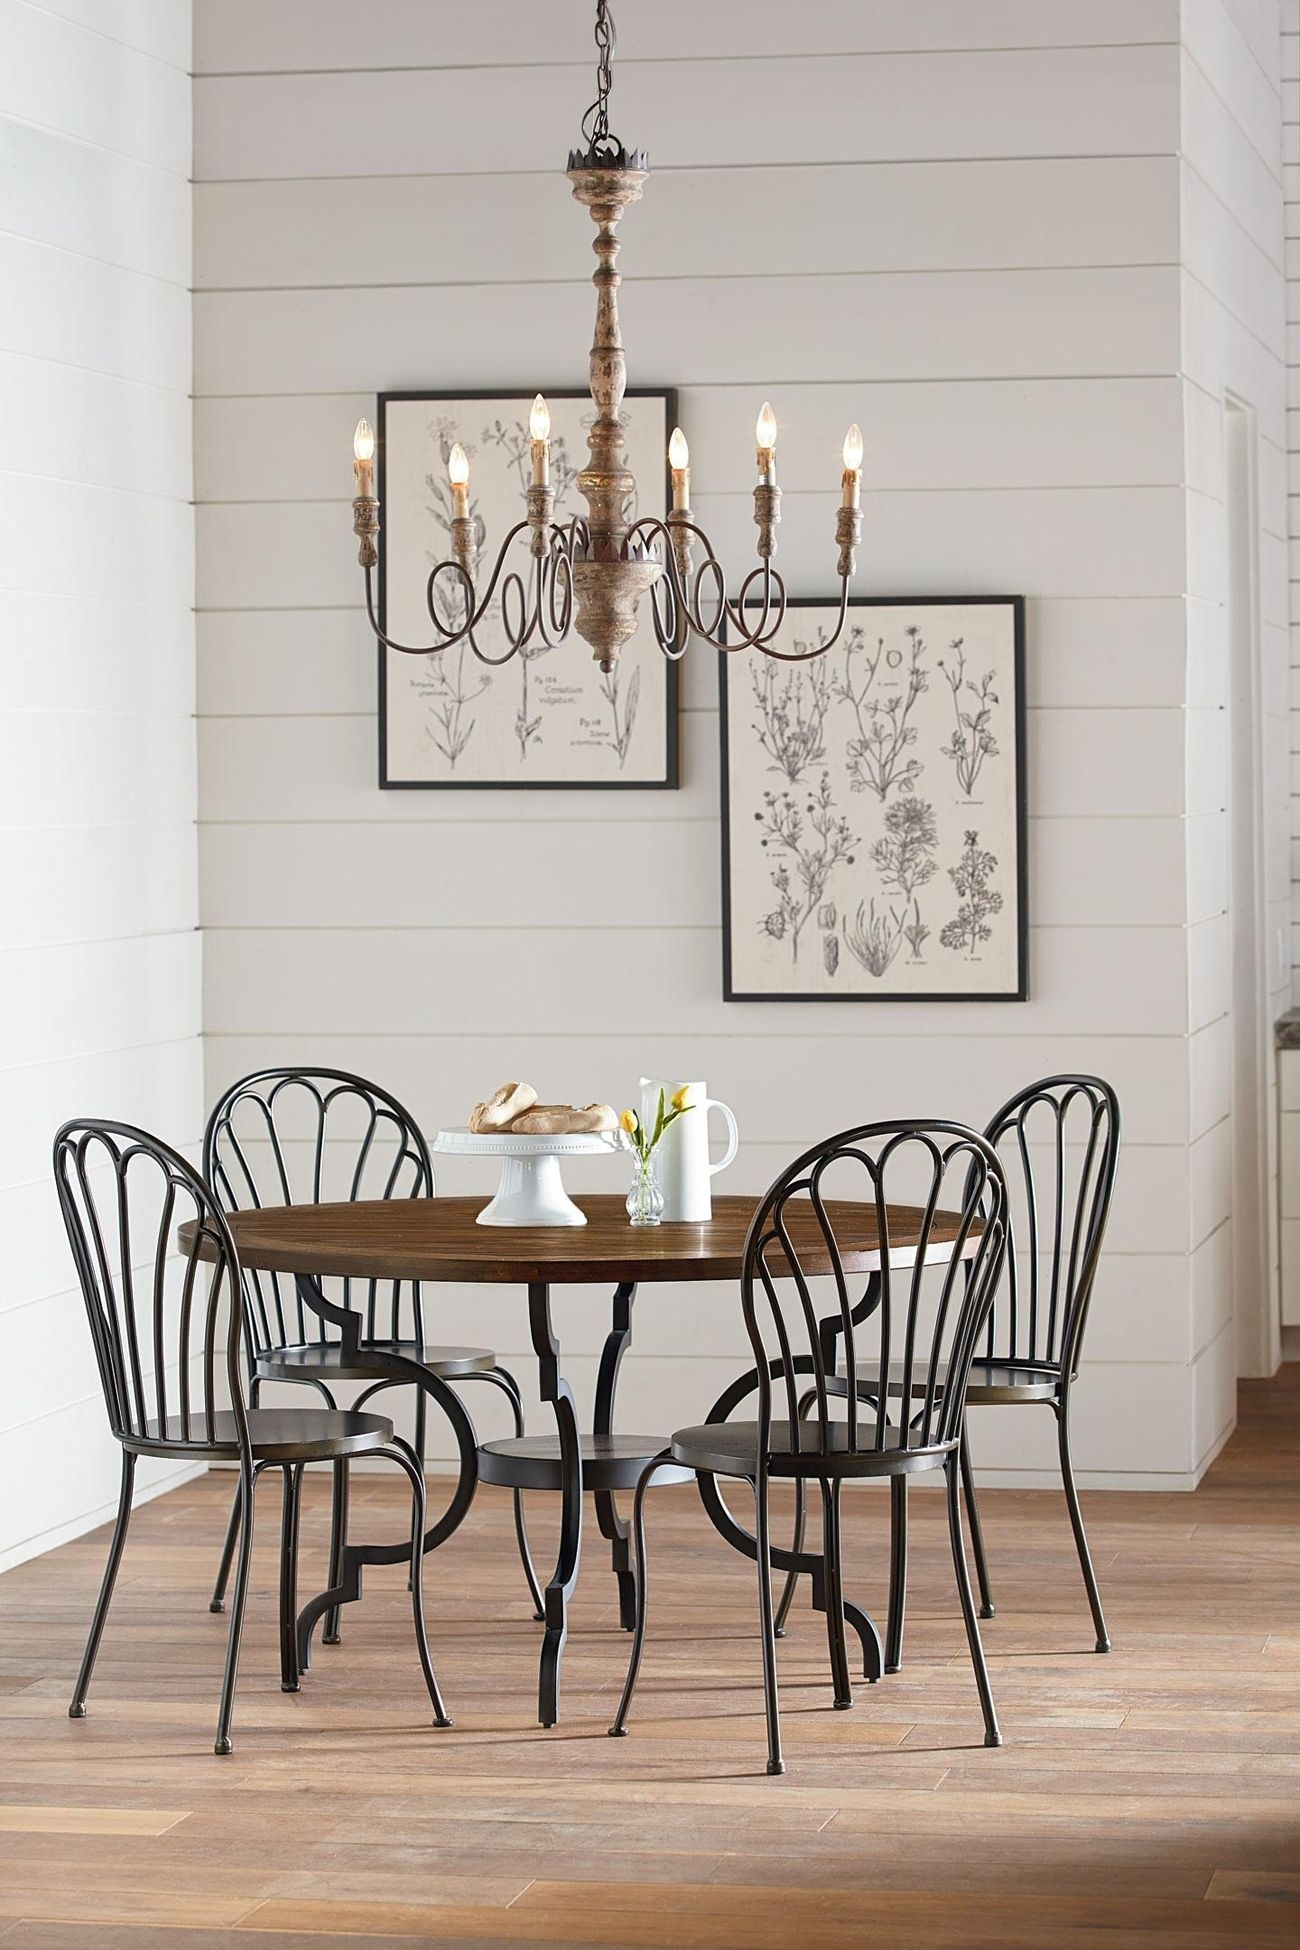 Magnolia Home French Inspired Dining Table | Magnolia Home At With Regard To Most Up To Date Magnolia Home Breakfast Round Black Dining Tables (Photo 1 of 20)